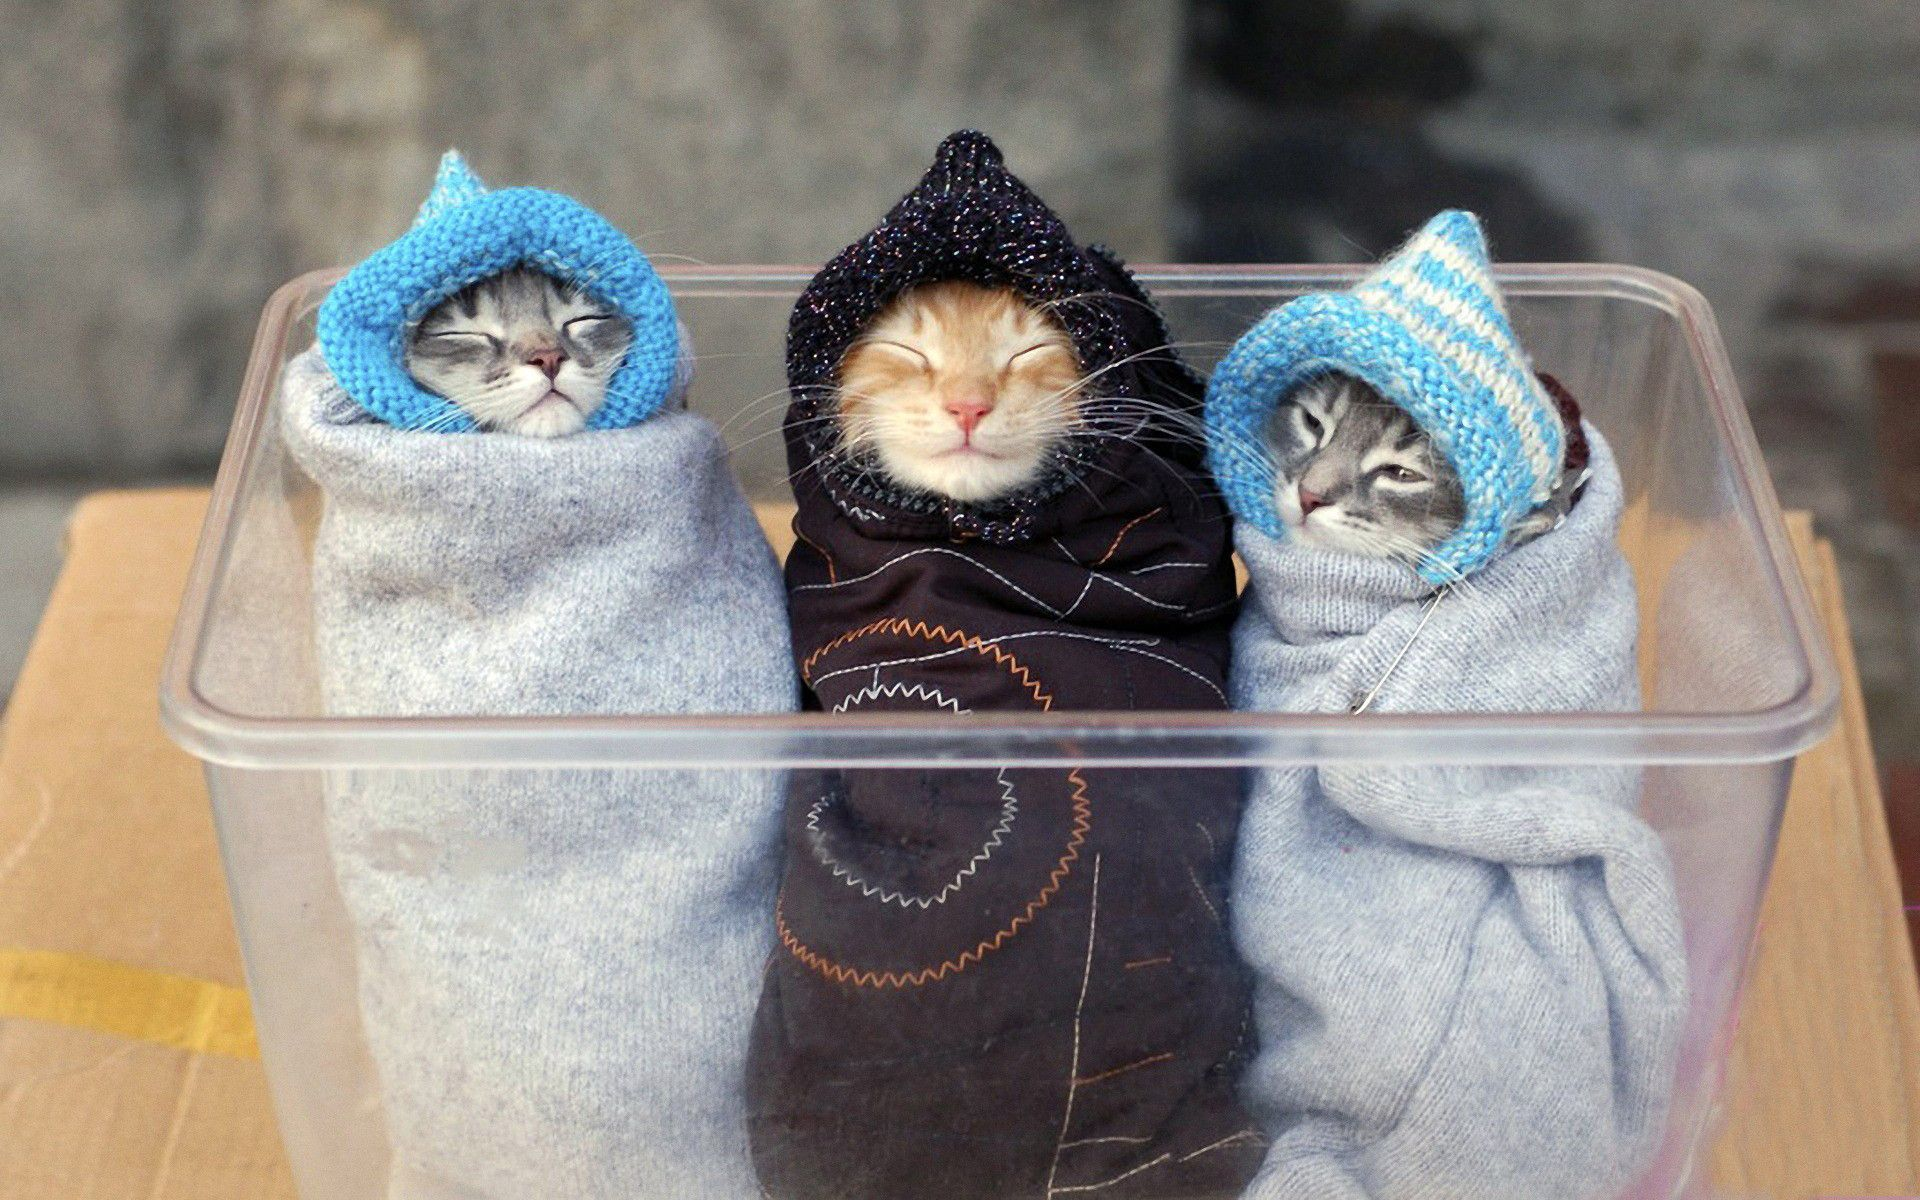 Purritos Cat Burritos Http Ift Tt 2p0u14y Cats And Kittens Cute Animals Kittens Cutest